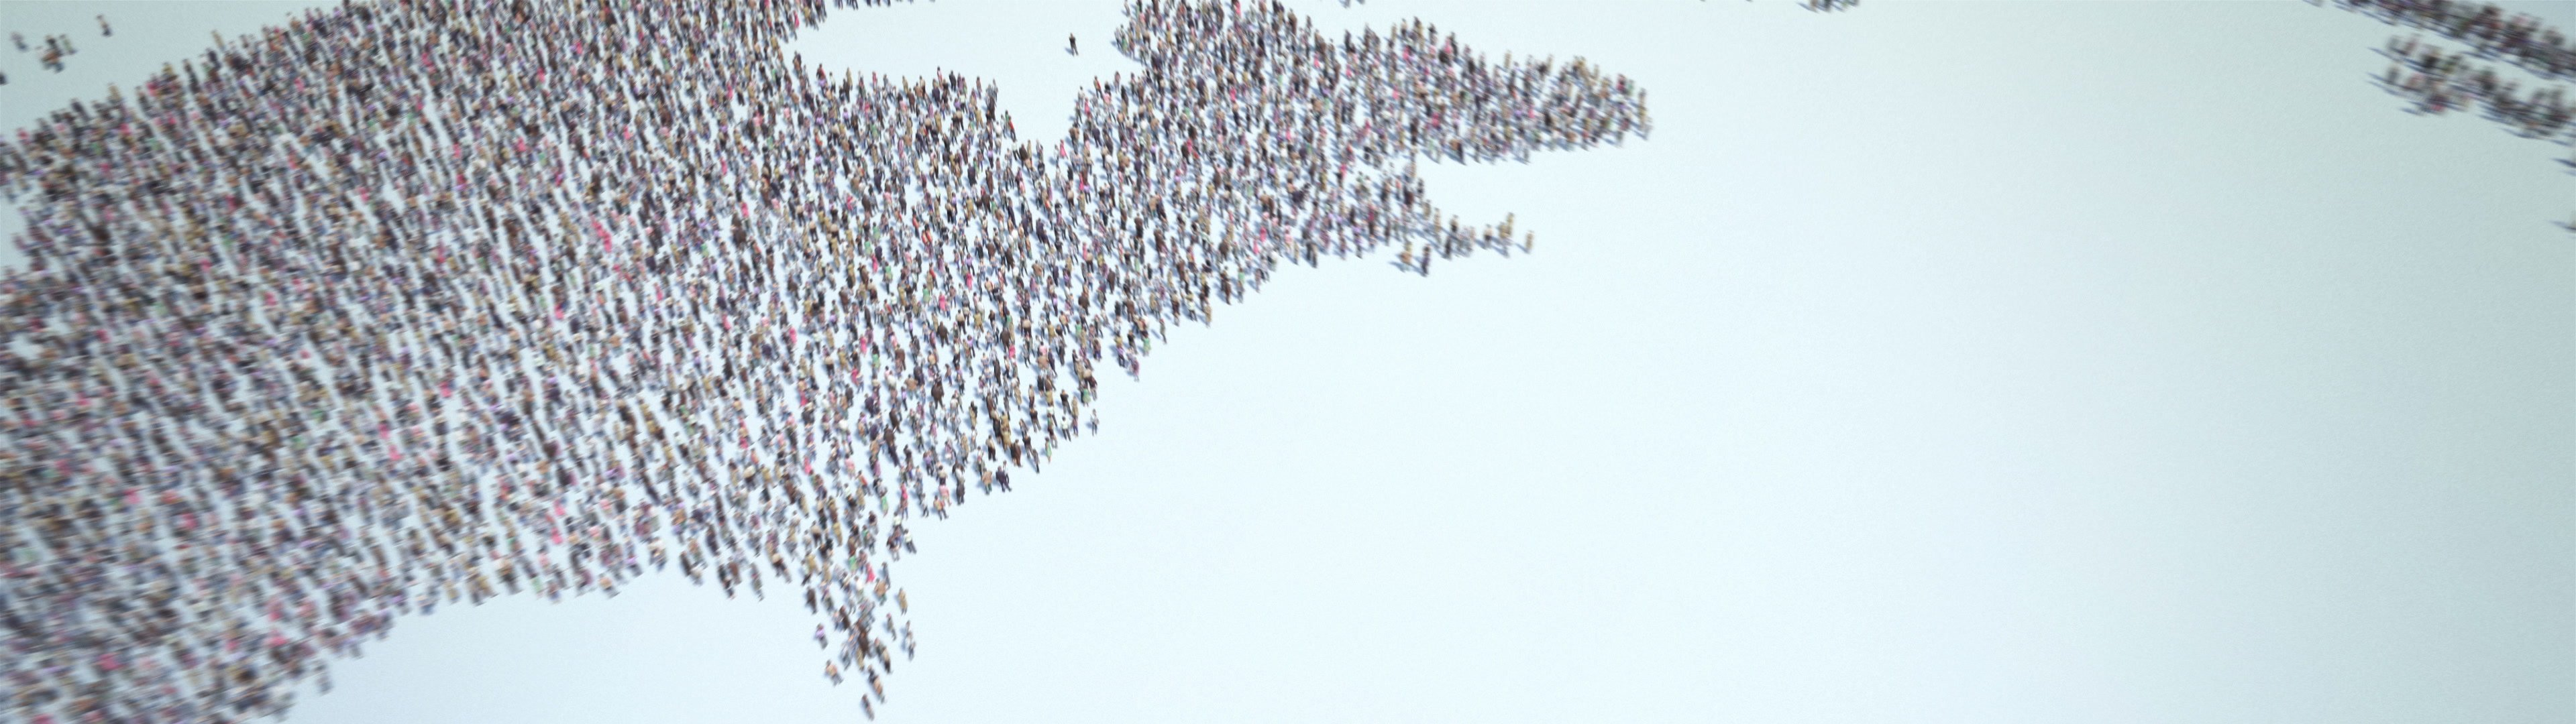 World of People | World of People. Thousands of people formed the globe icon. Camera zoom out. 4k. - ID:24454